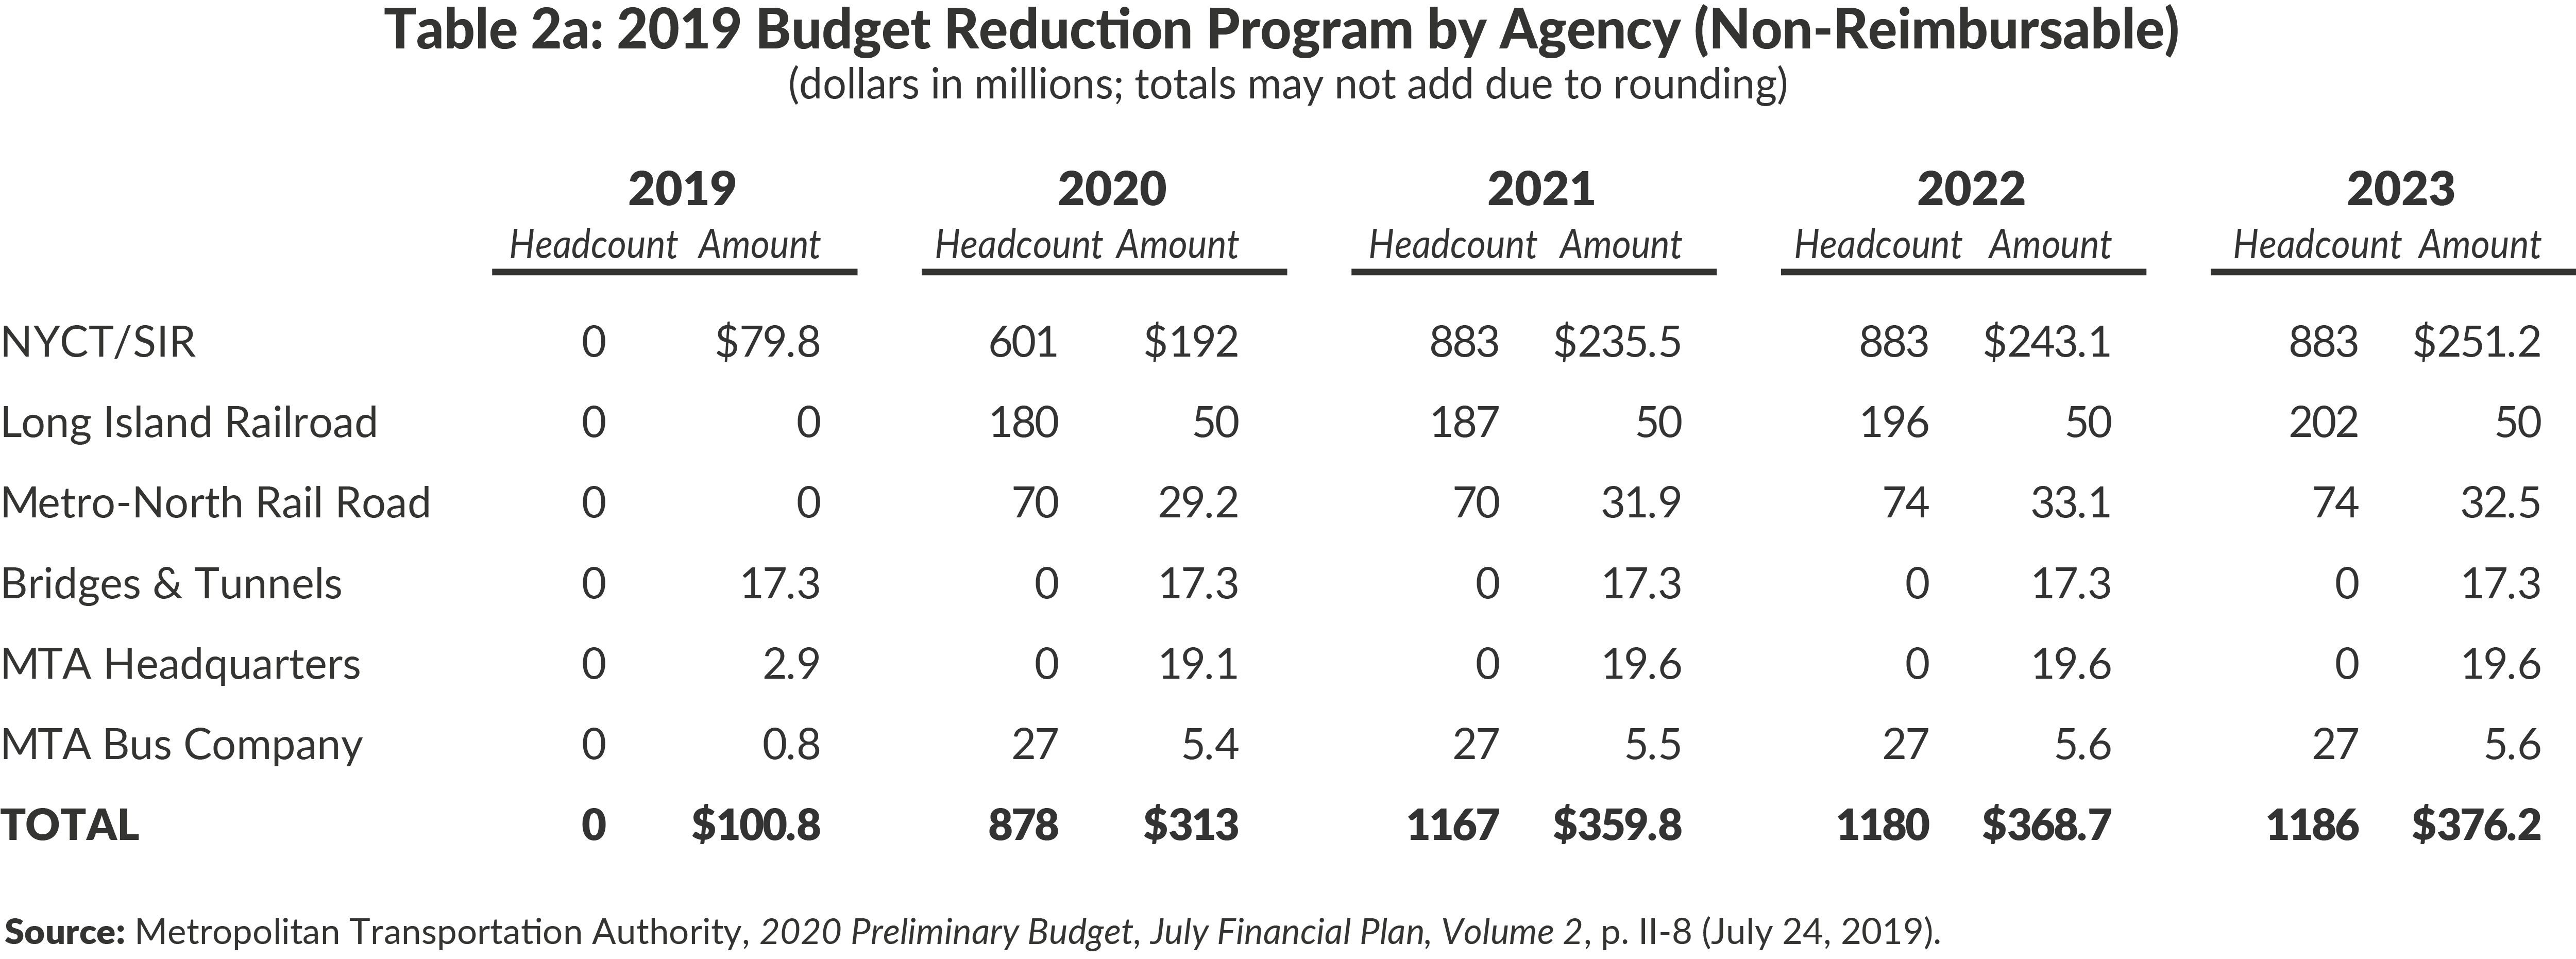 Table 2a: 2019 Budget Reduction Program by Agency (Non-Reimbursable)